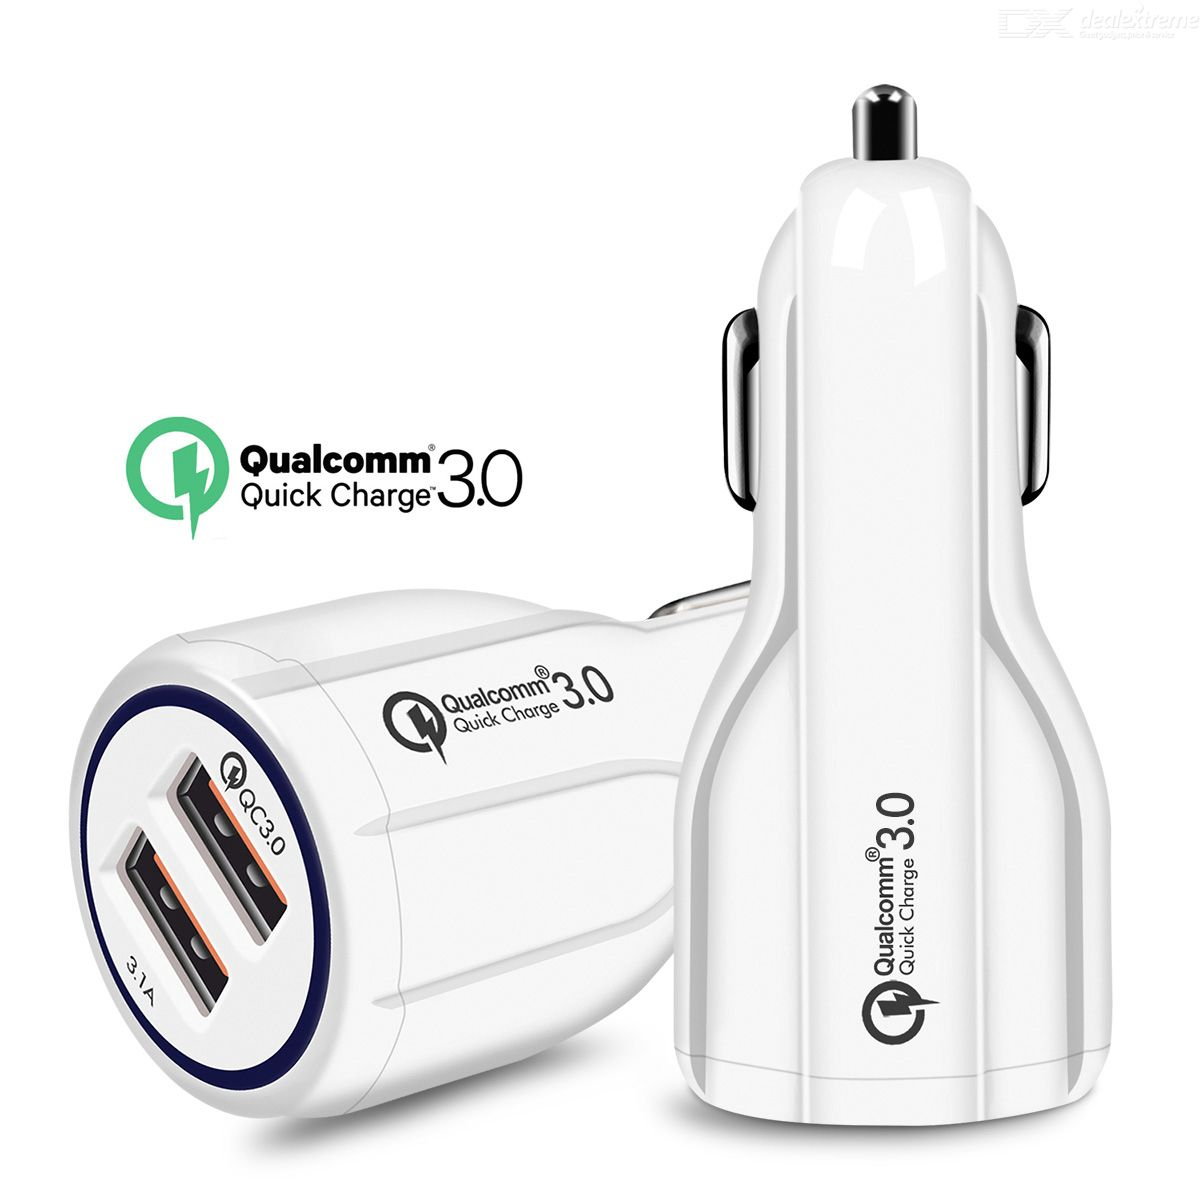 Measy Quick Charge 3.0 Car Charger For Mobile Phone Dual Usb Car Charger - White